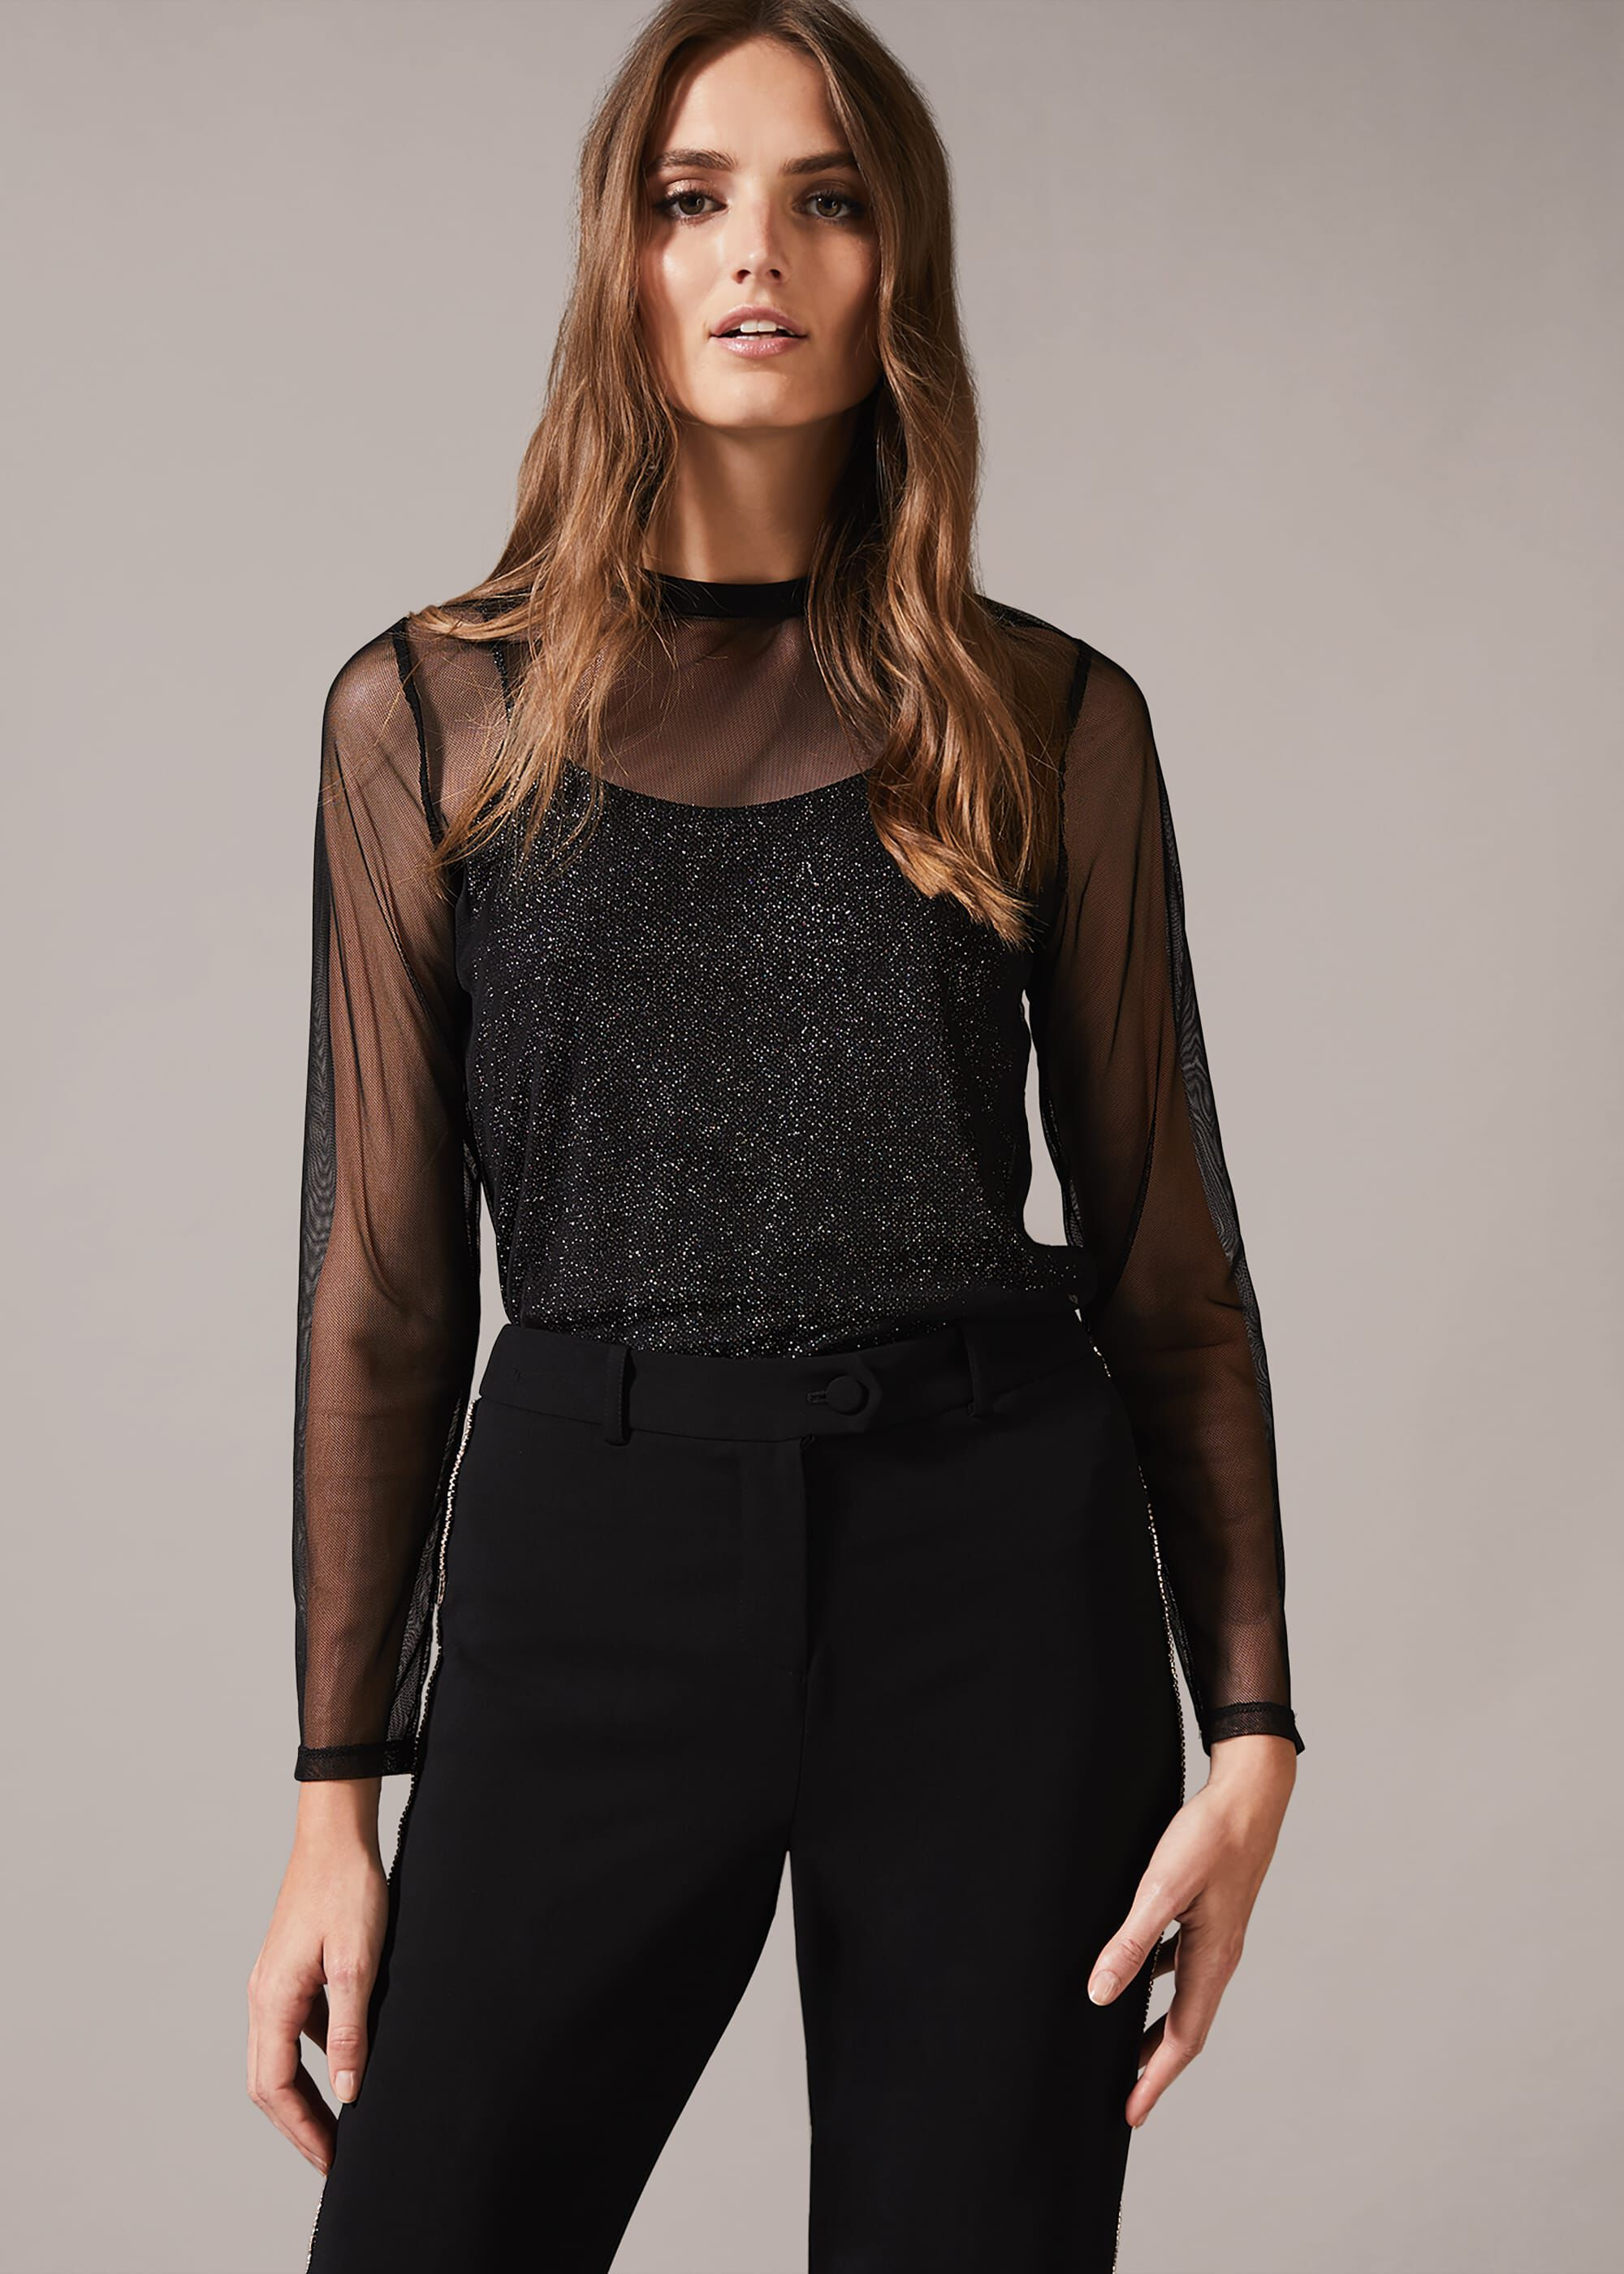 Phase Eight Nadire Mesh Overlay Top, Black, Blouse